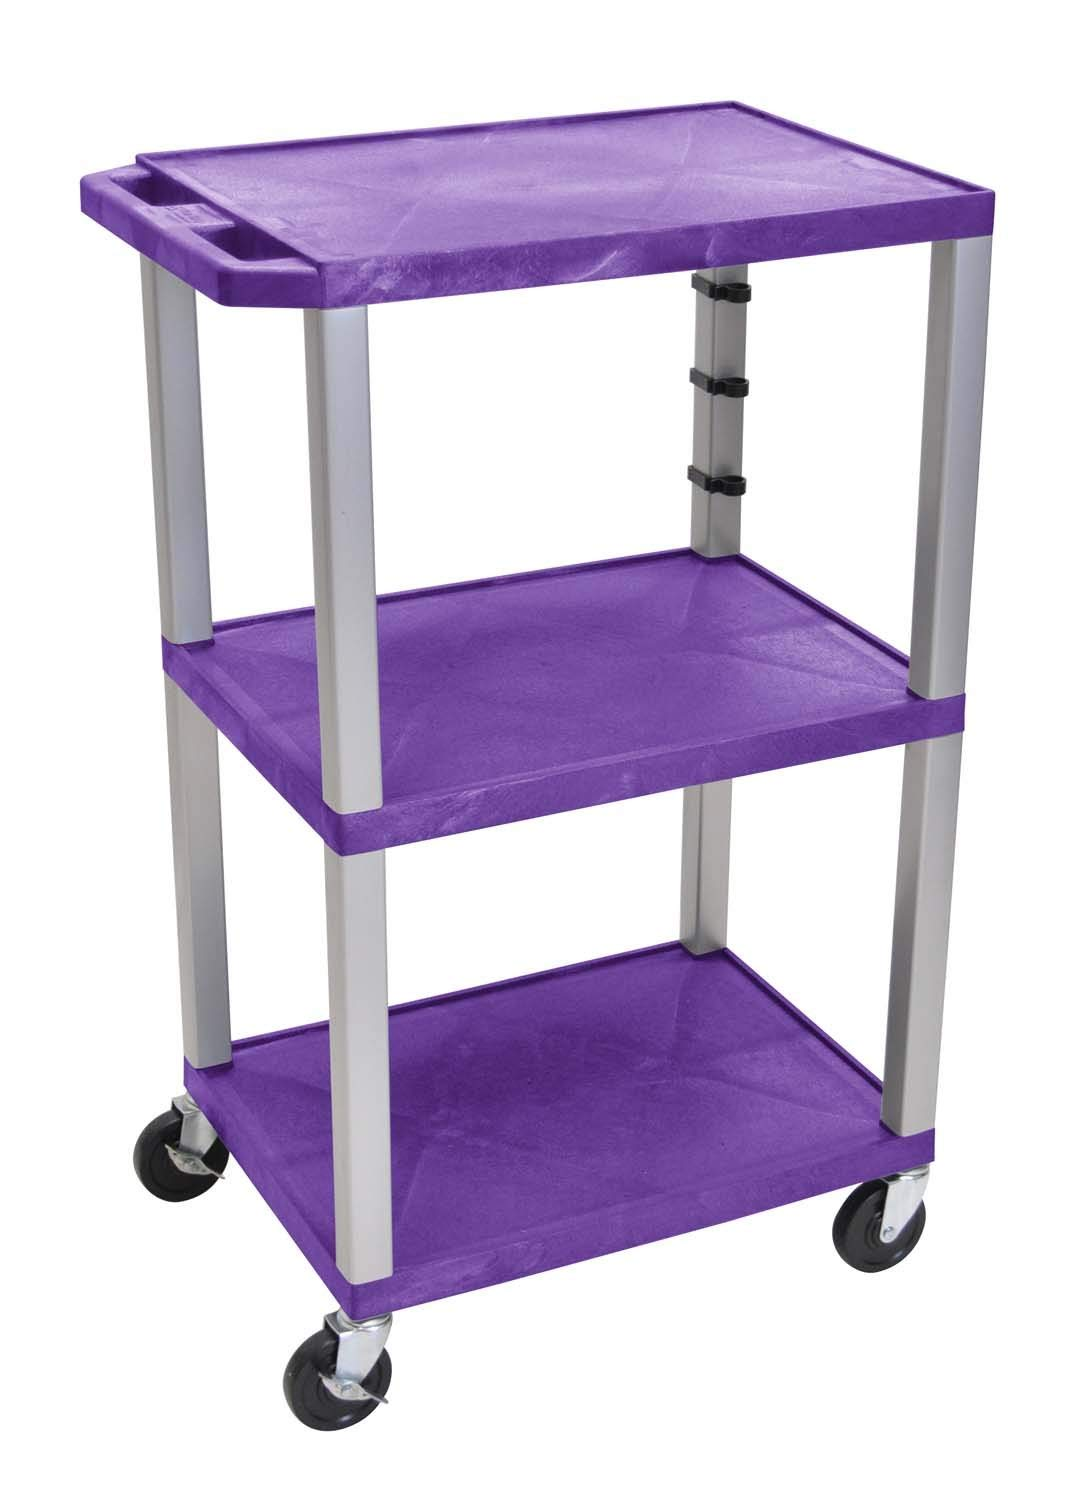 Offex clickhere2shop Mobile Multipurpose 3-Shelves Tuffy Cart, Purple with Nickel Legs (OF-WT42PE-N)